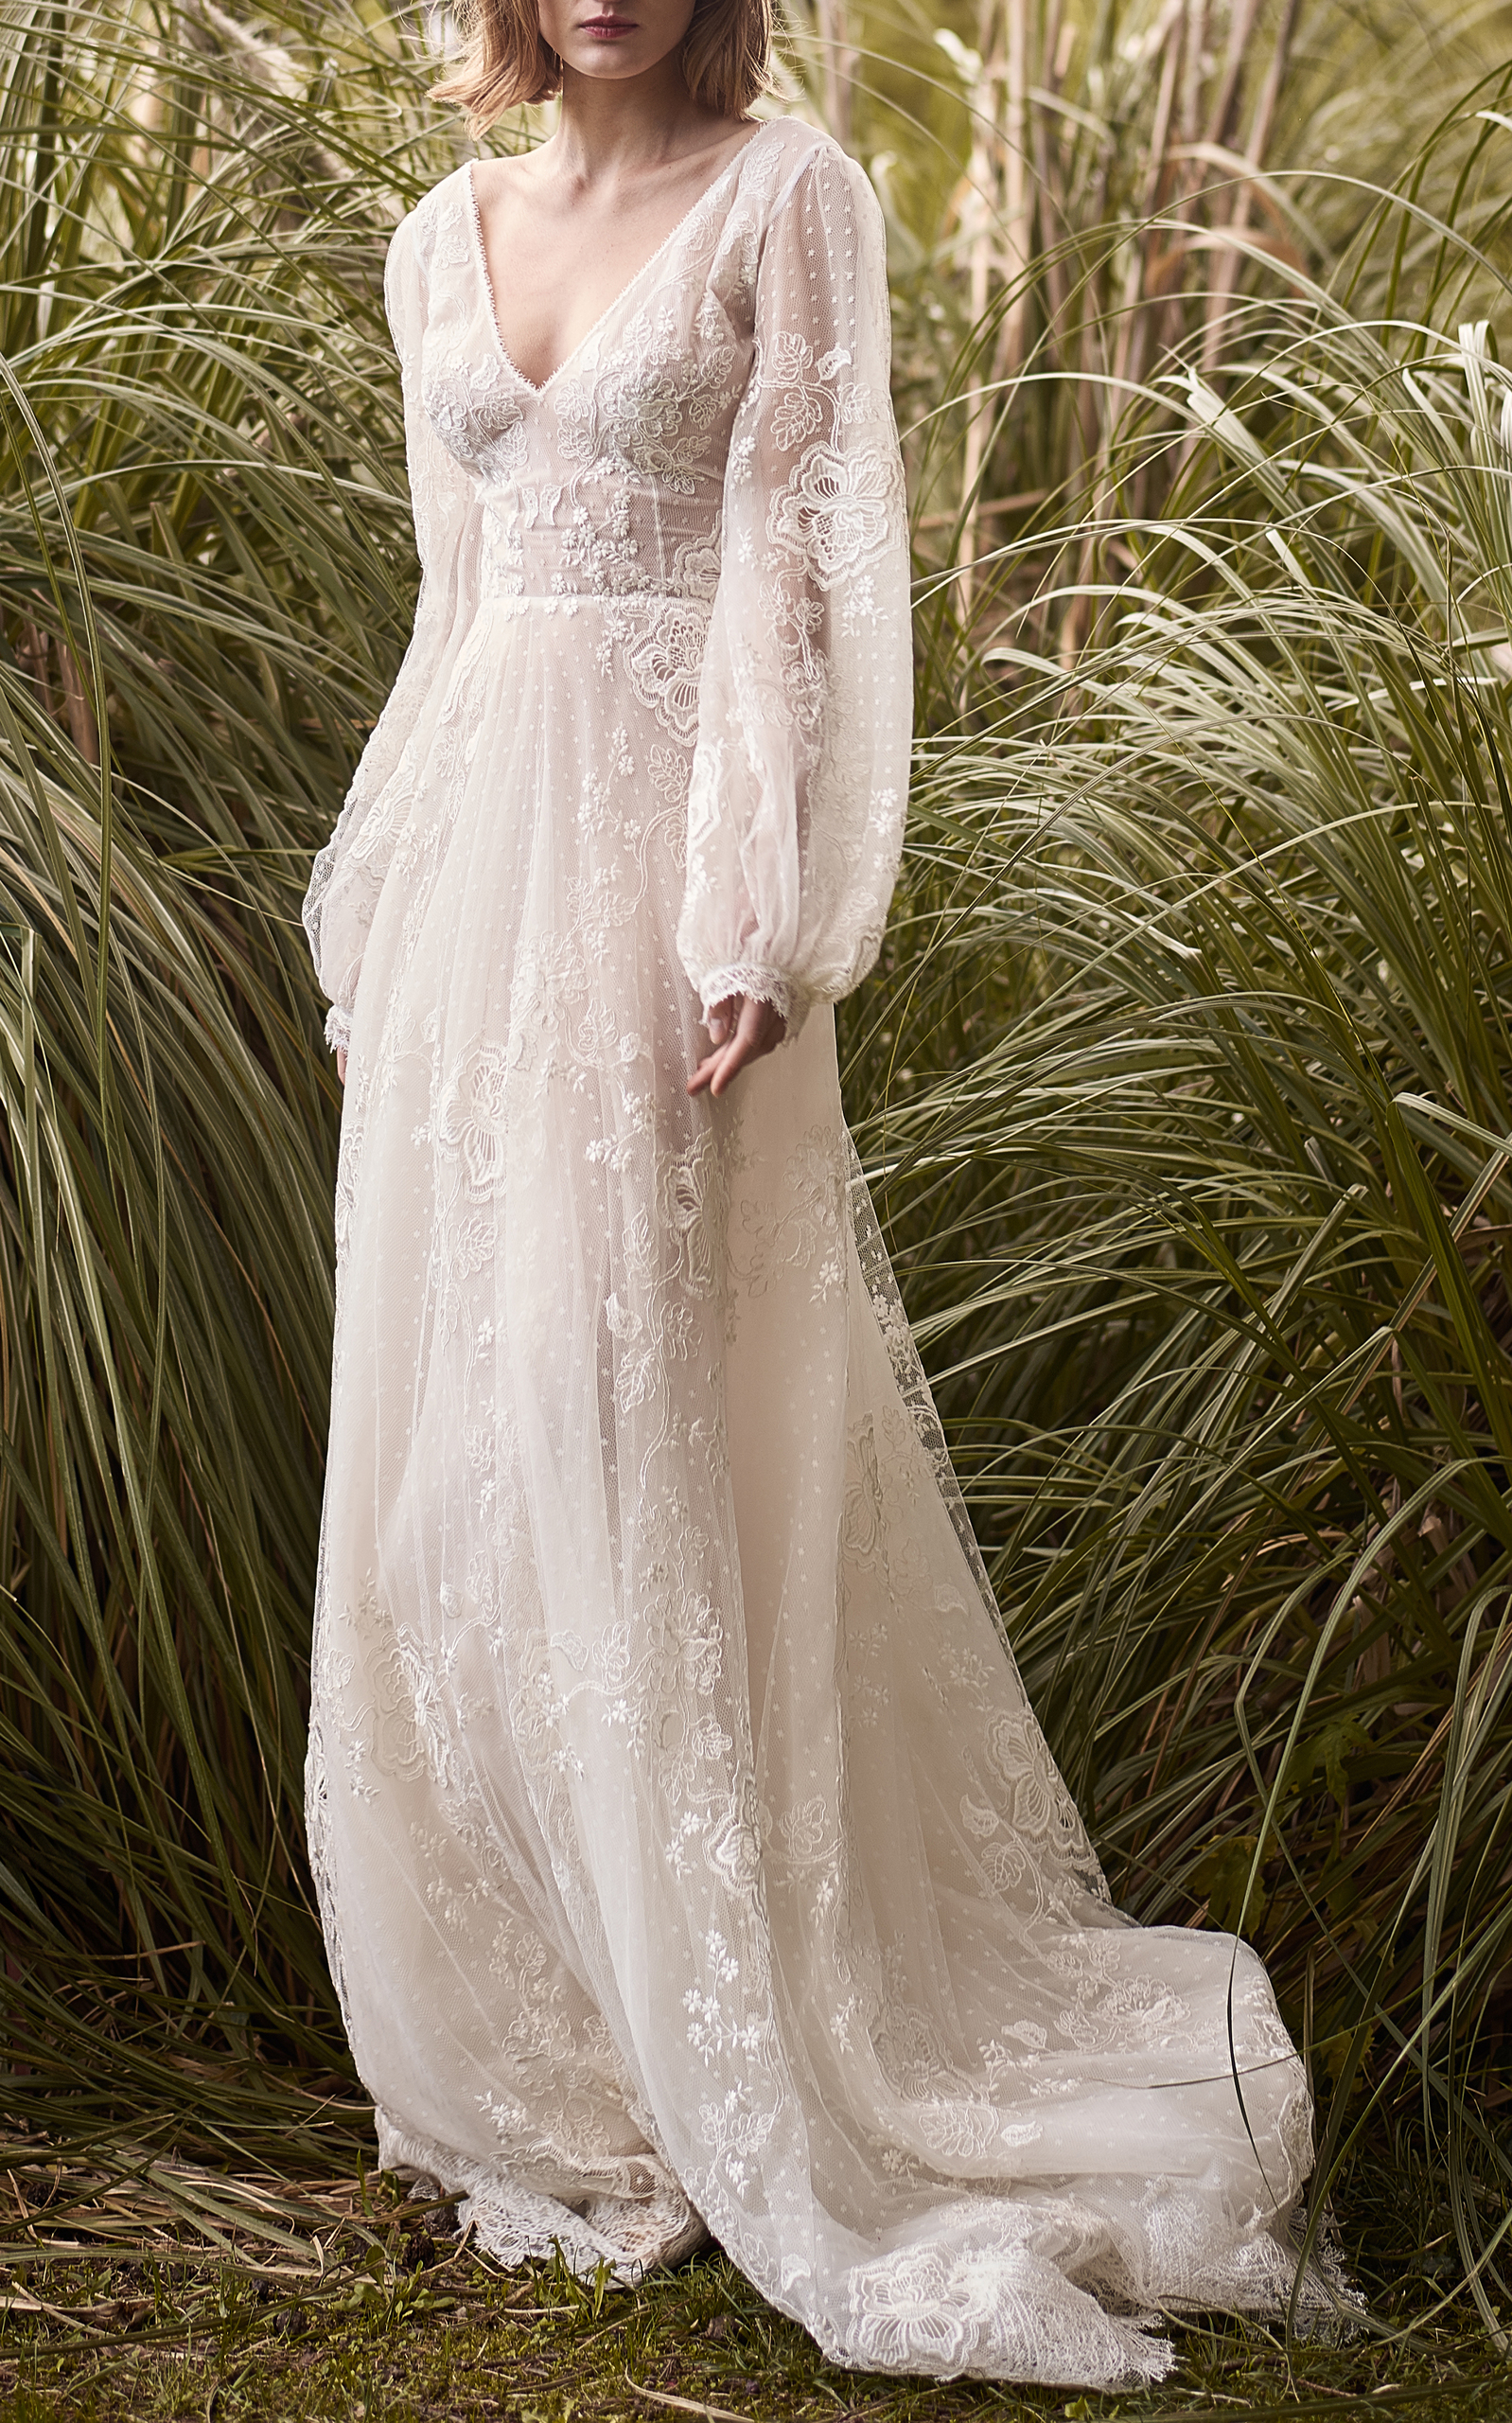 Embroidered Lace Ethereal Gown by Costarellos Bridal | Moda Operandi